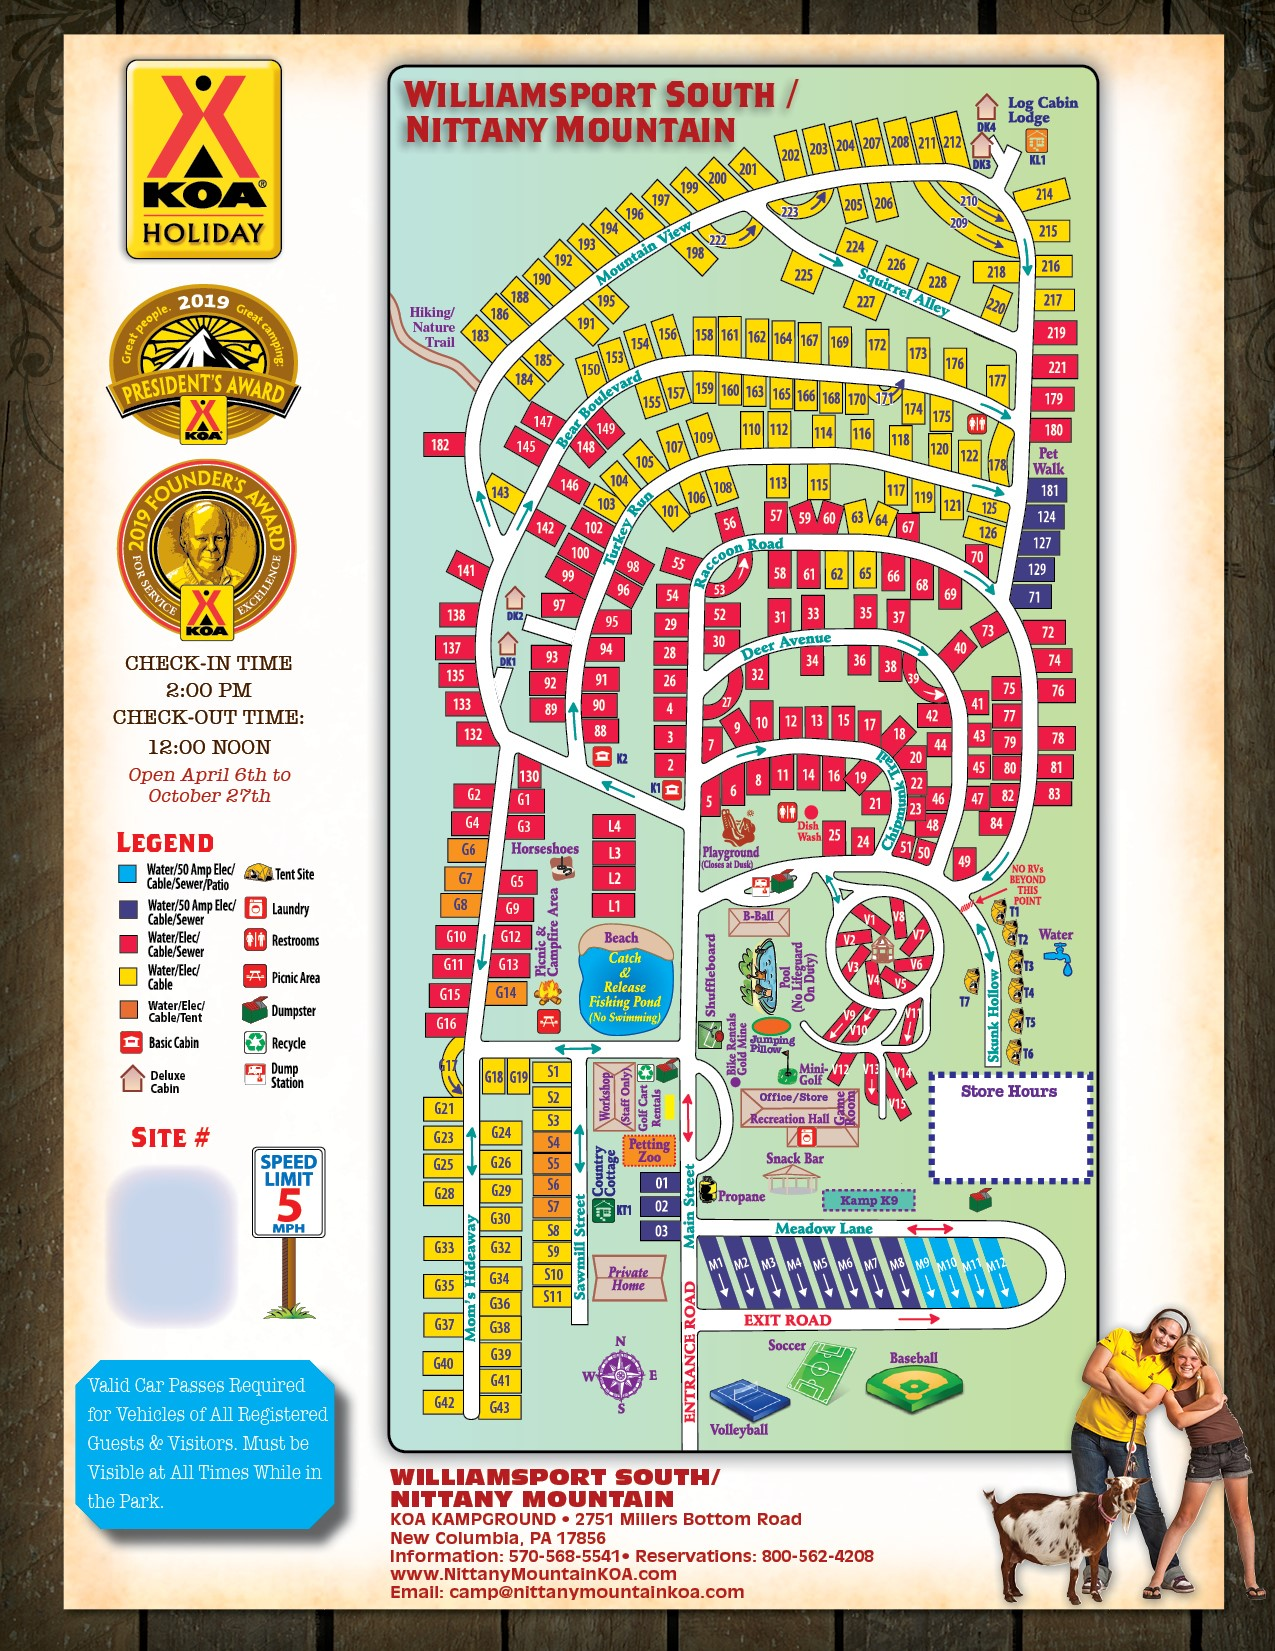 New Columbia, Pennsylvania Campground | Williamsport South / Nittany on santa's village camping map, idlewild map, from valley forge road duncansville on map, silverwood theme park camping map, darien lake camping map, amusement map,